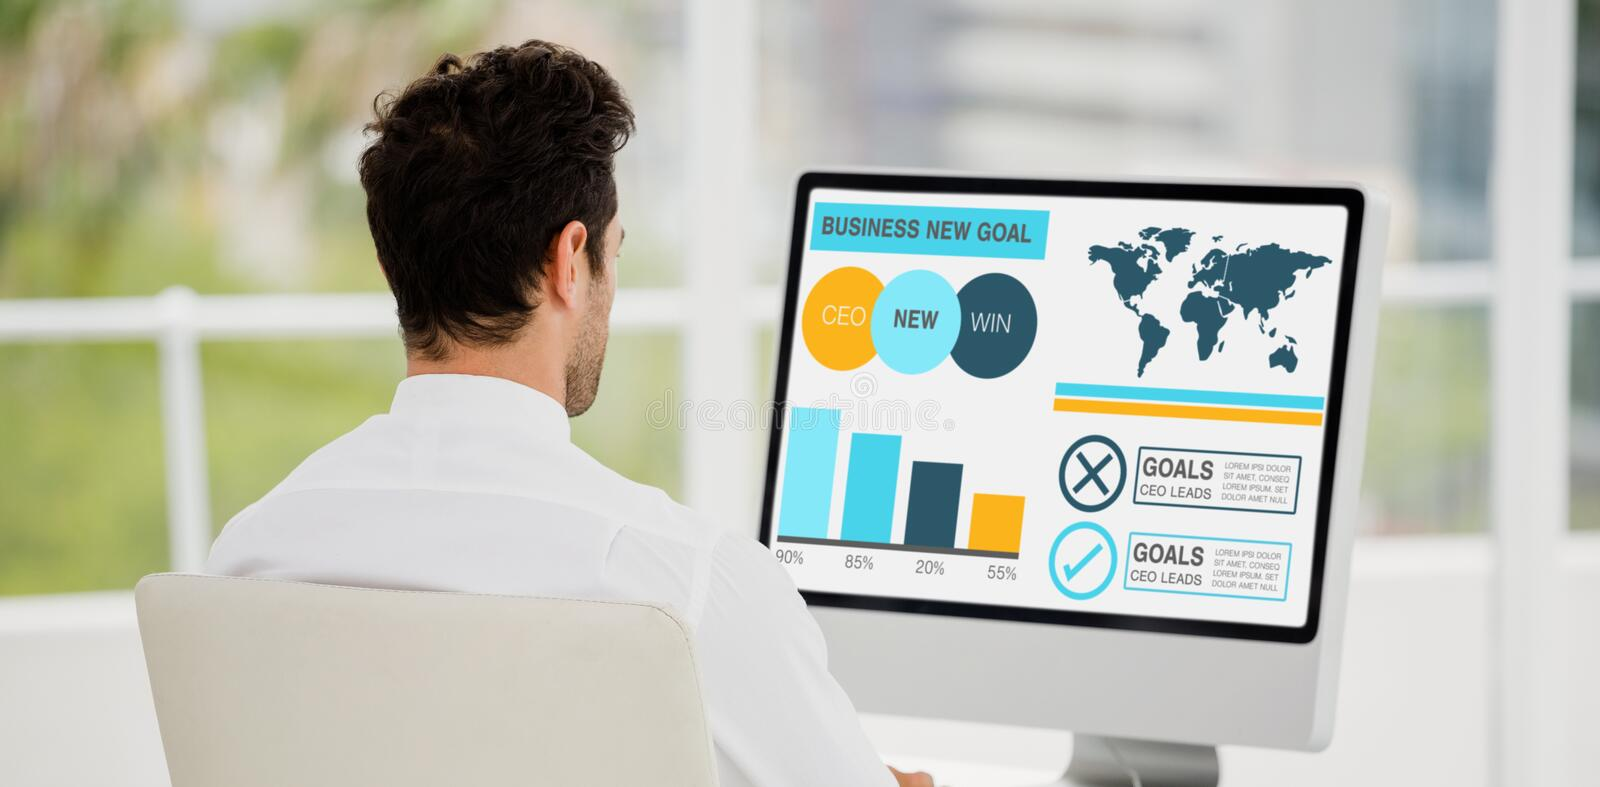 Composite image of computer graphic image of business presentation with charts and text. Computer graphic image of business presentation with charts and text stock photography